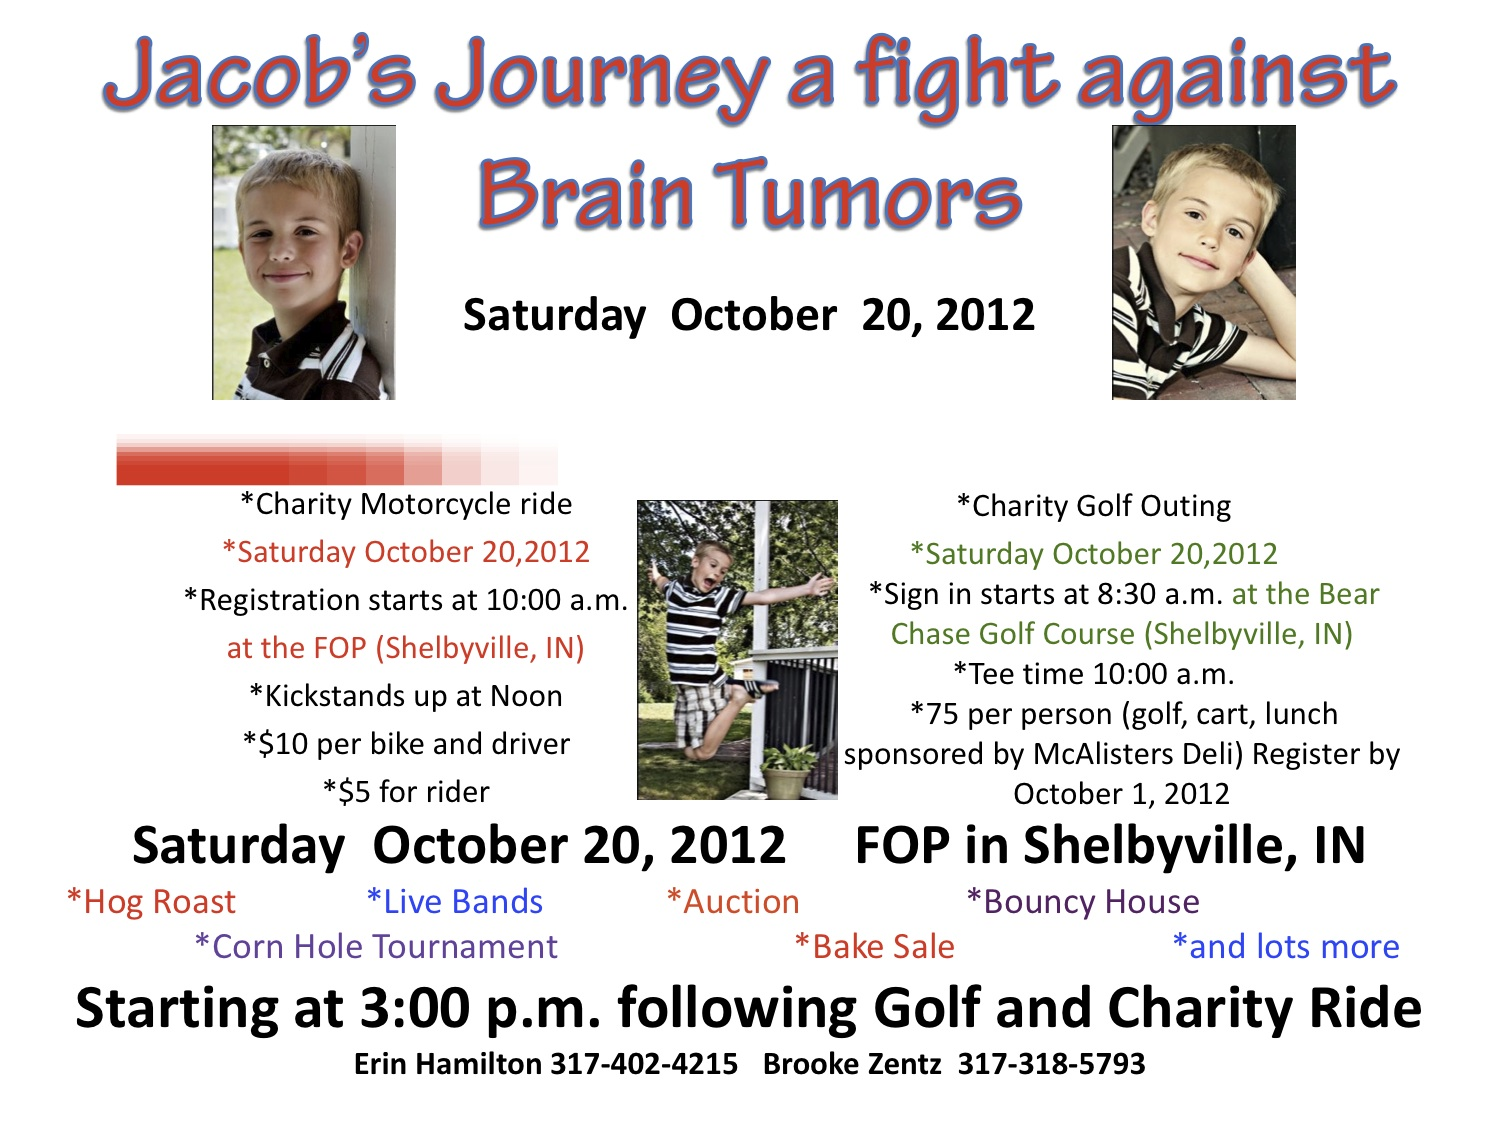 Jacob Tyler Journey a fight against brain tumors flyer